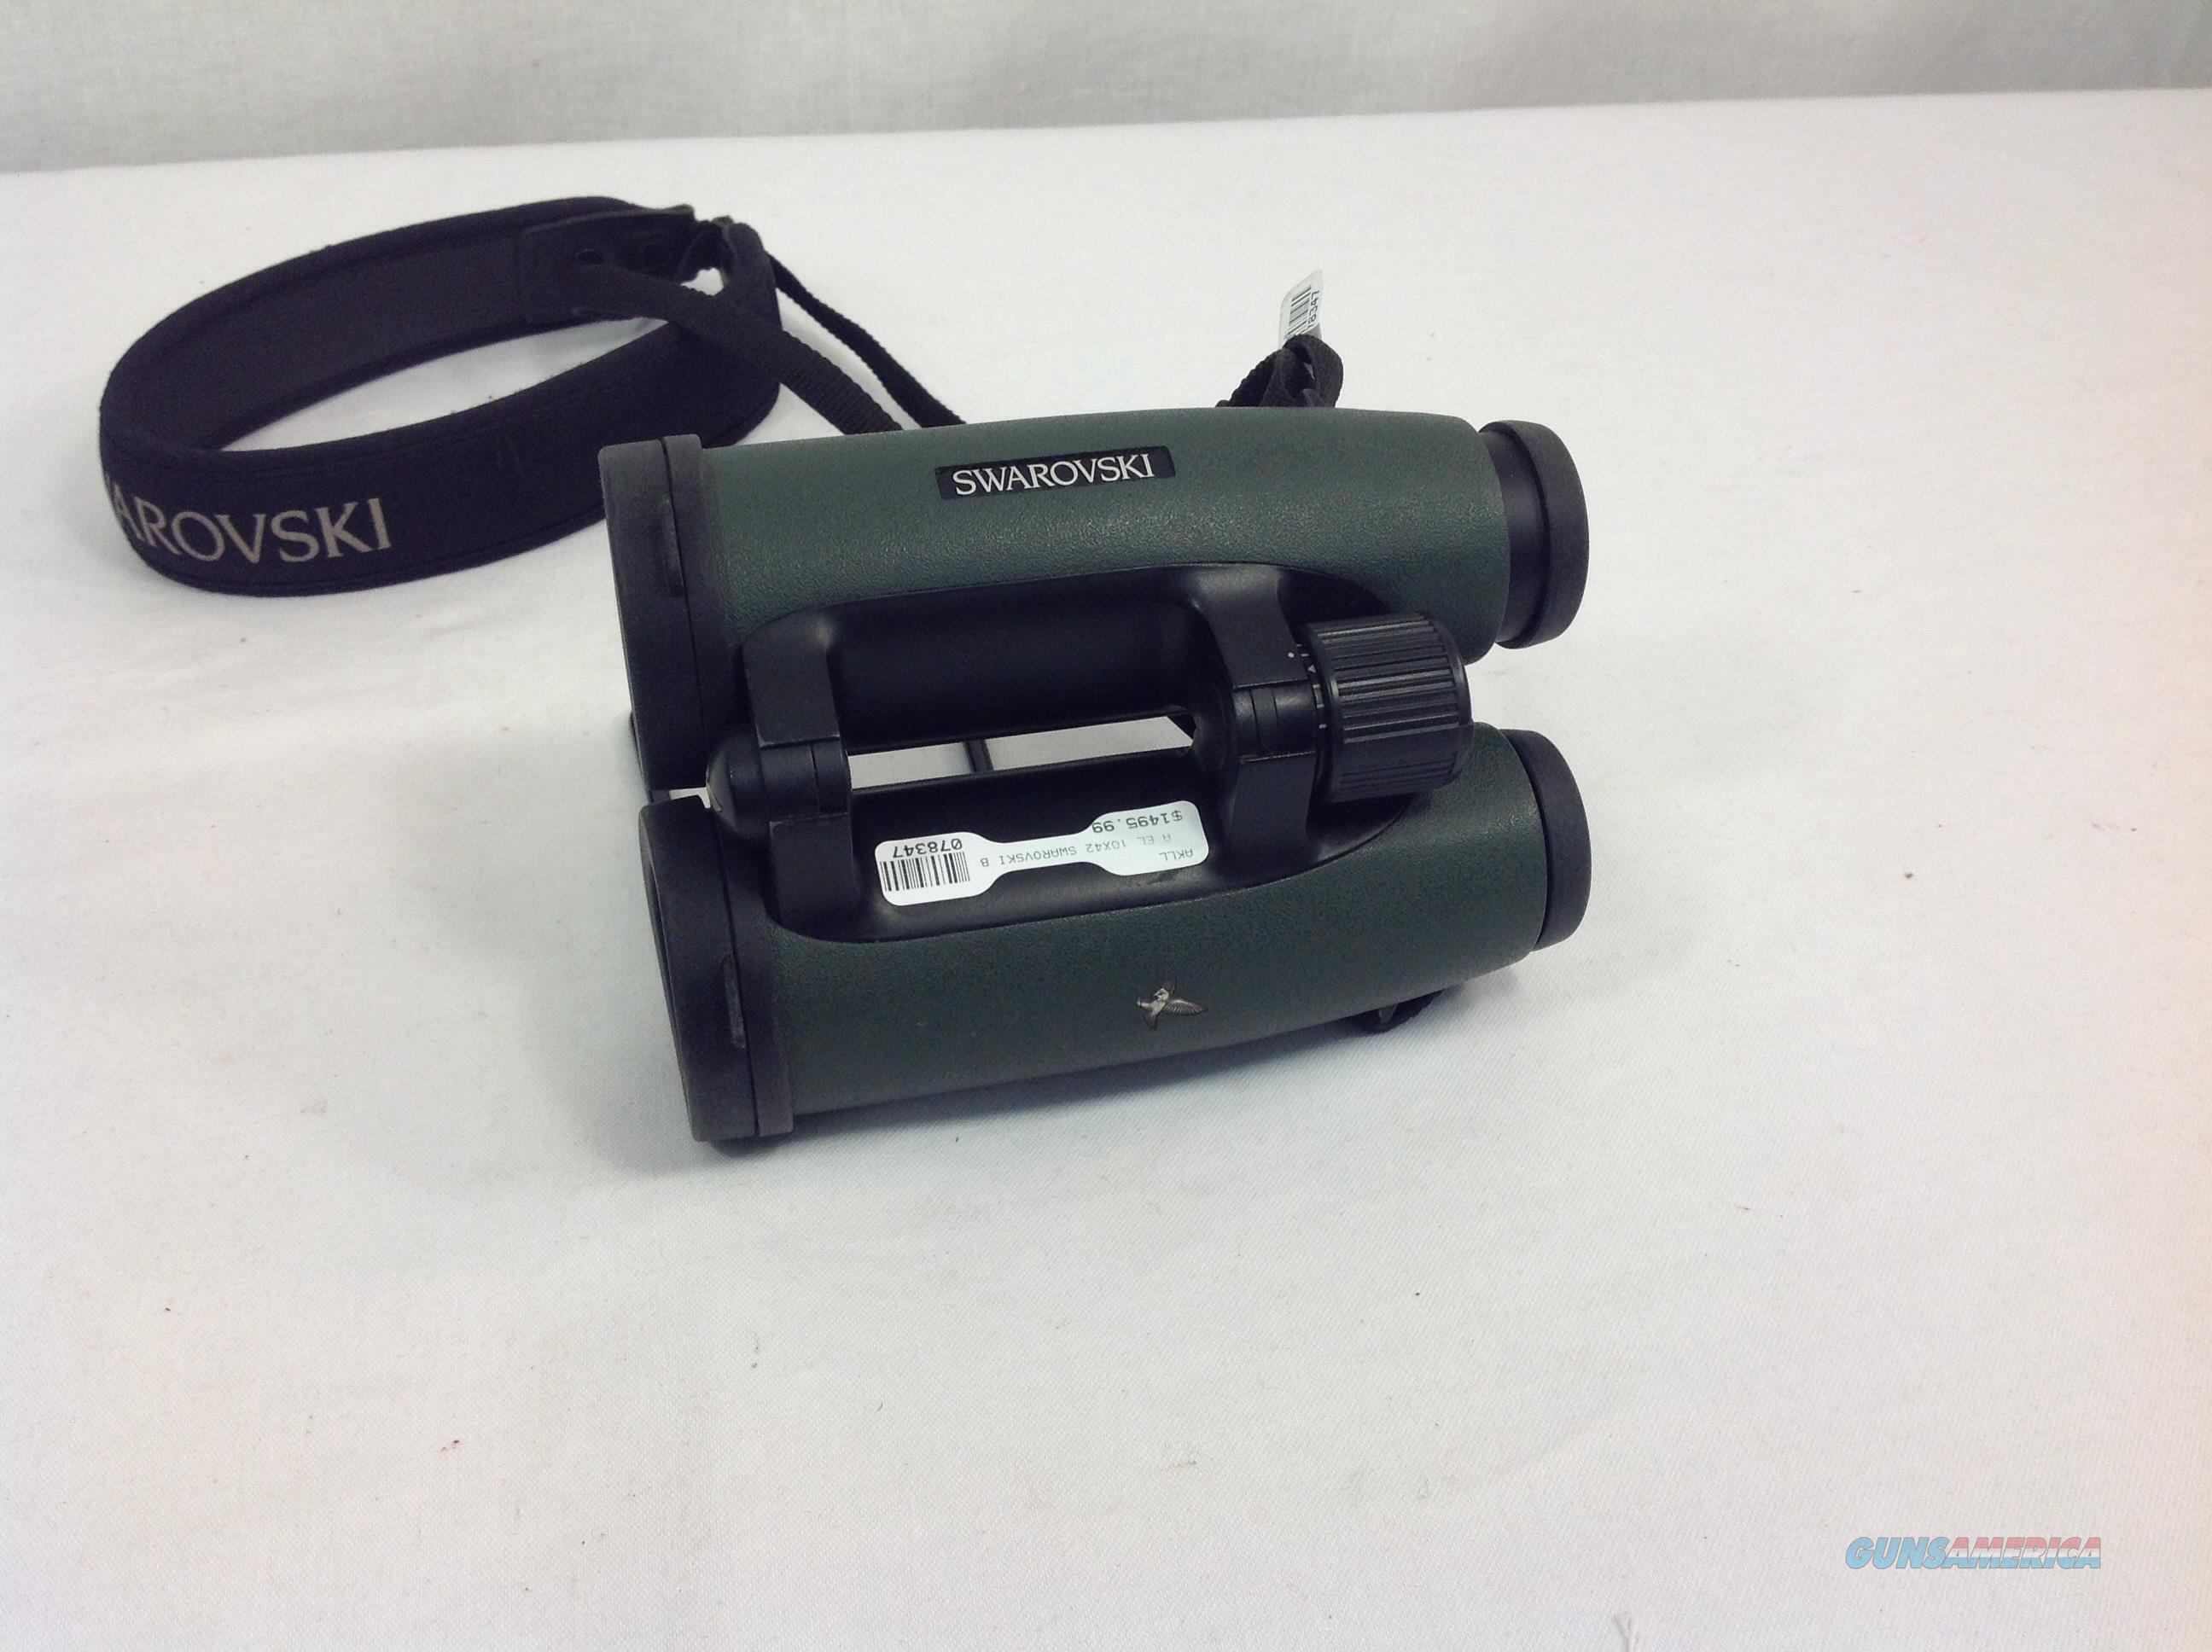 Swarovski EL 10x42  Non-Guns > Scopes/Mounts/Rings & Optics > Non-Scope Optics > Binoculars